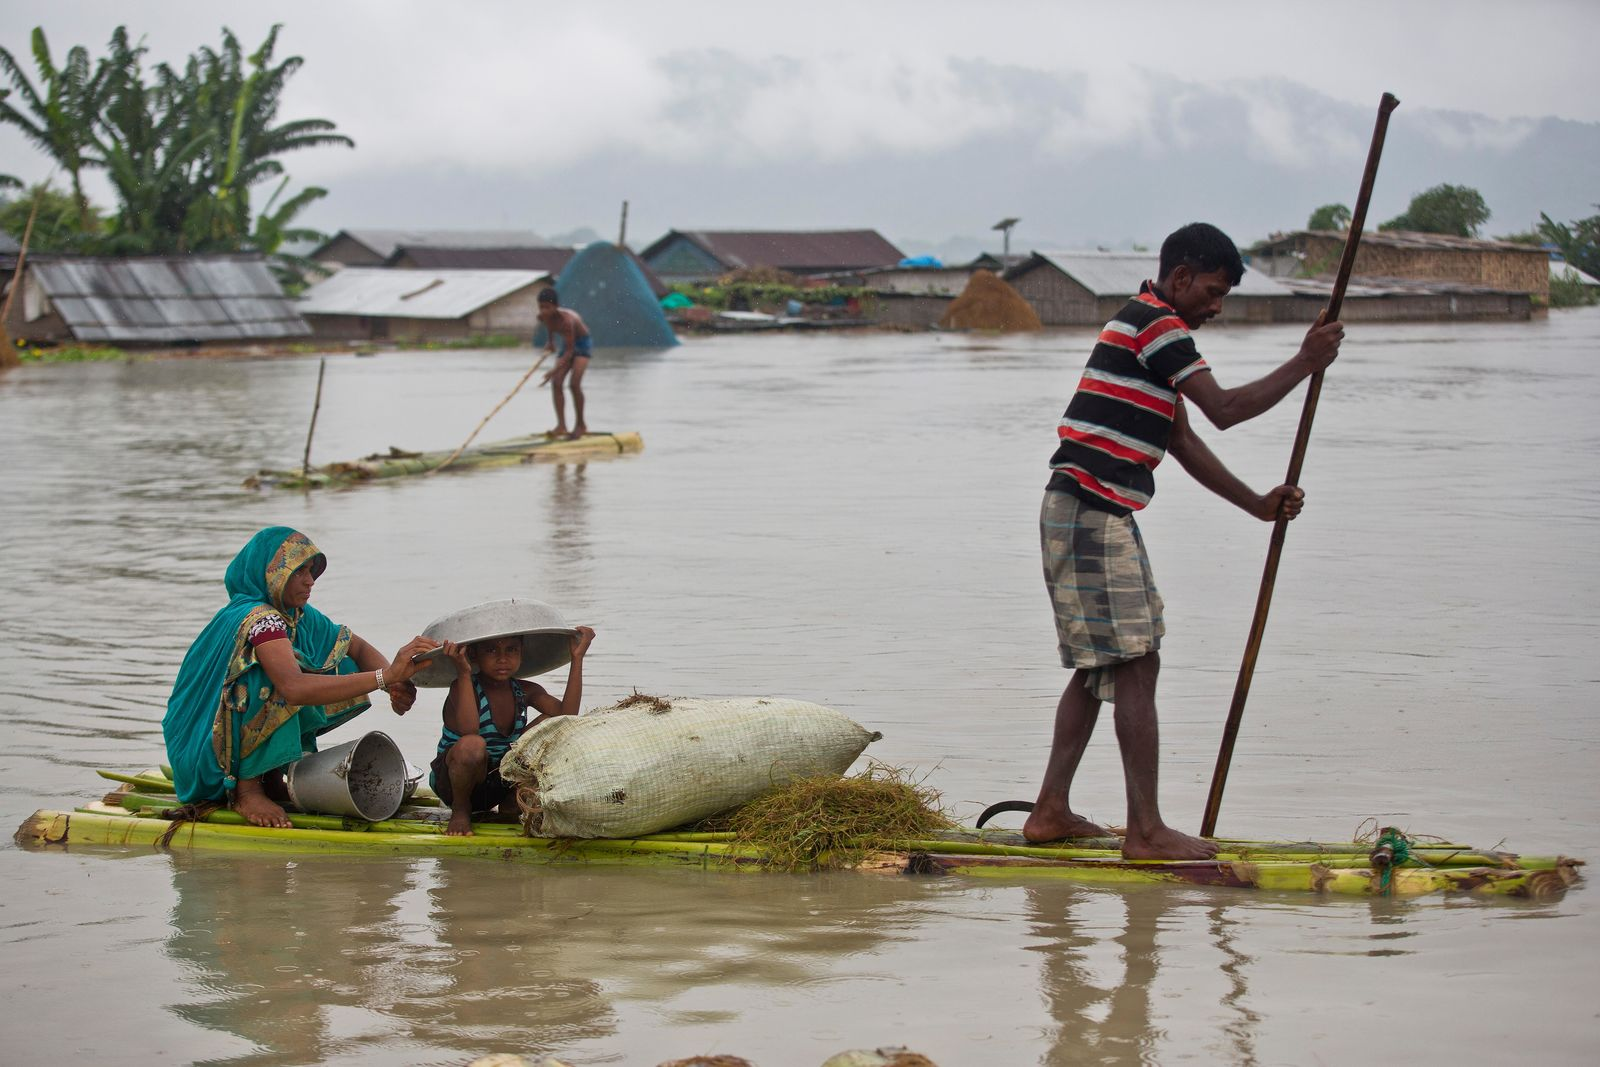 Flood affected villagers move on a makeshift bamboo raft in Katahguri village along the river Brahmaputra, east of Gauhati, India, Sunday, July 14, 2019. Officials in northeastern India said more than a dozen people were killed and over a million affected by flooding. Rain-triggered floods, mudslides and lightning have left a trail of destruction in other parts of South Asia. (AP Photo/Anupam Nath)